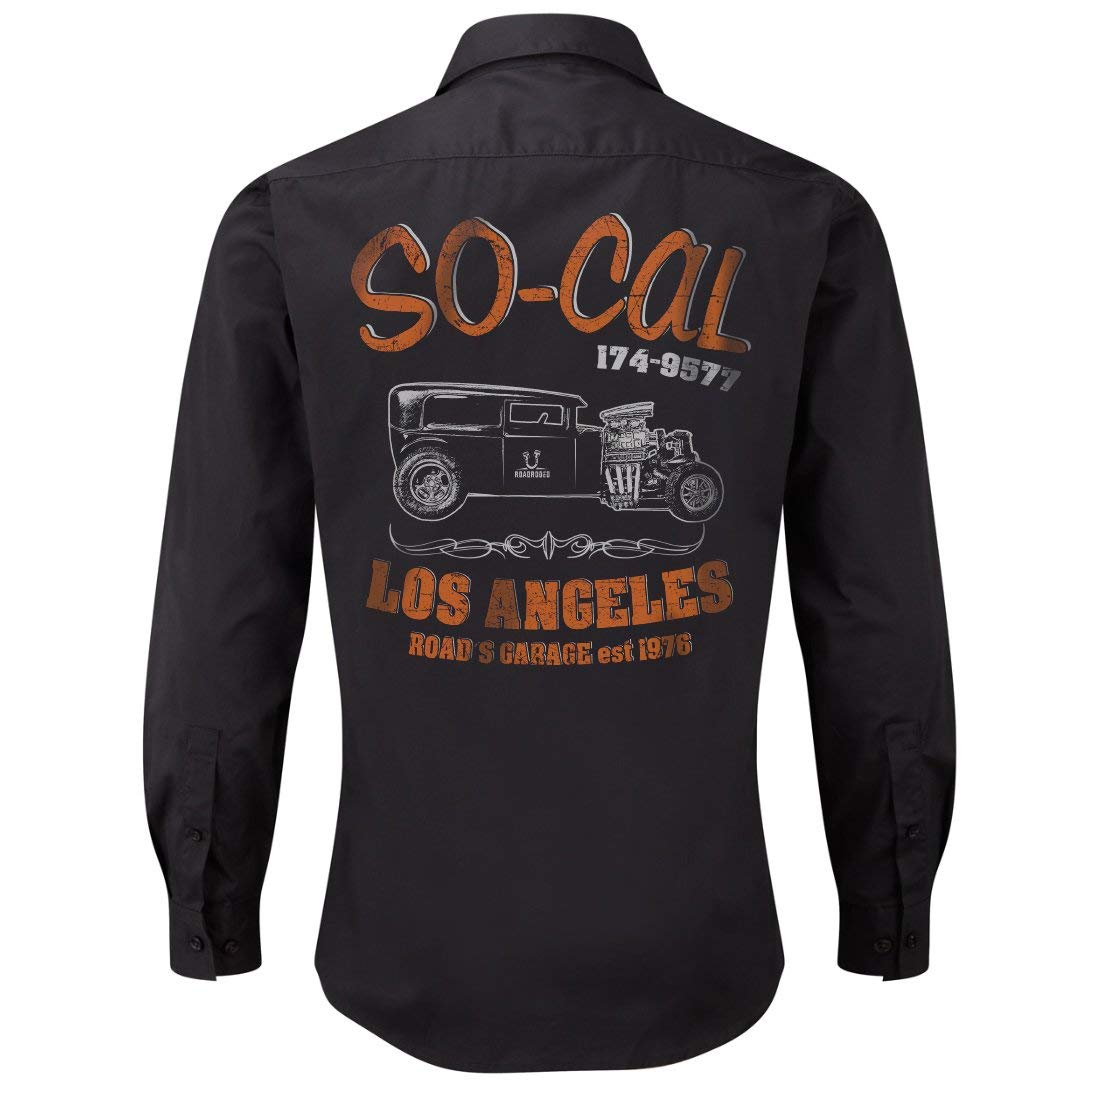 Rockabilly,Mechanic Work Shirt, Longsleeve, Rock'n'Roll, Hot Rod, V8, US Car, SoCal